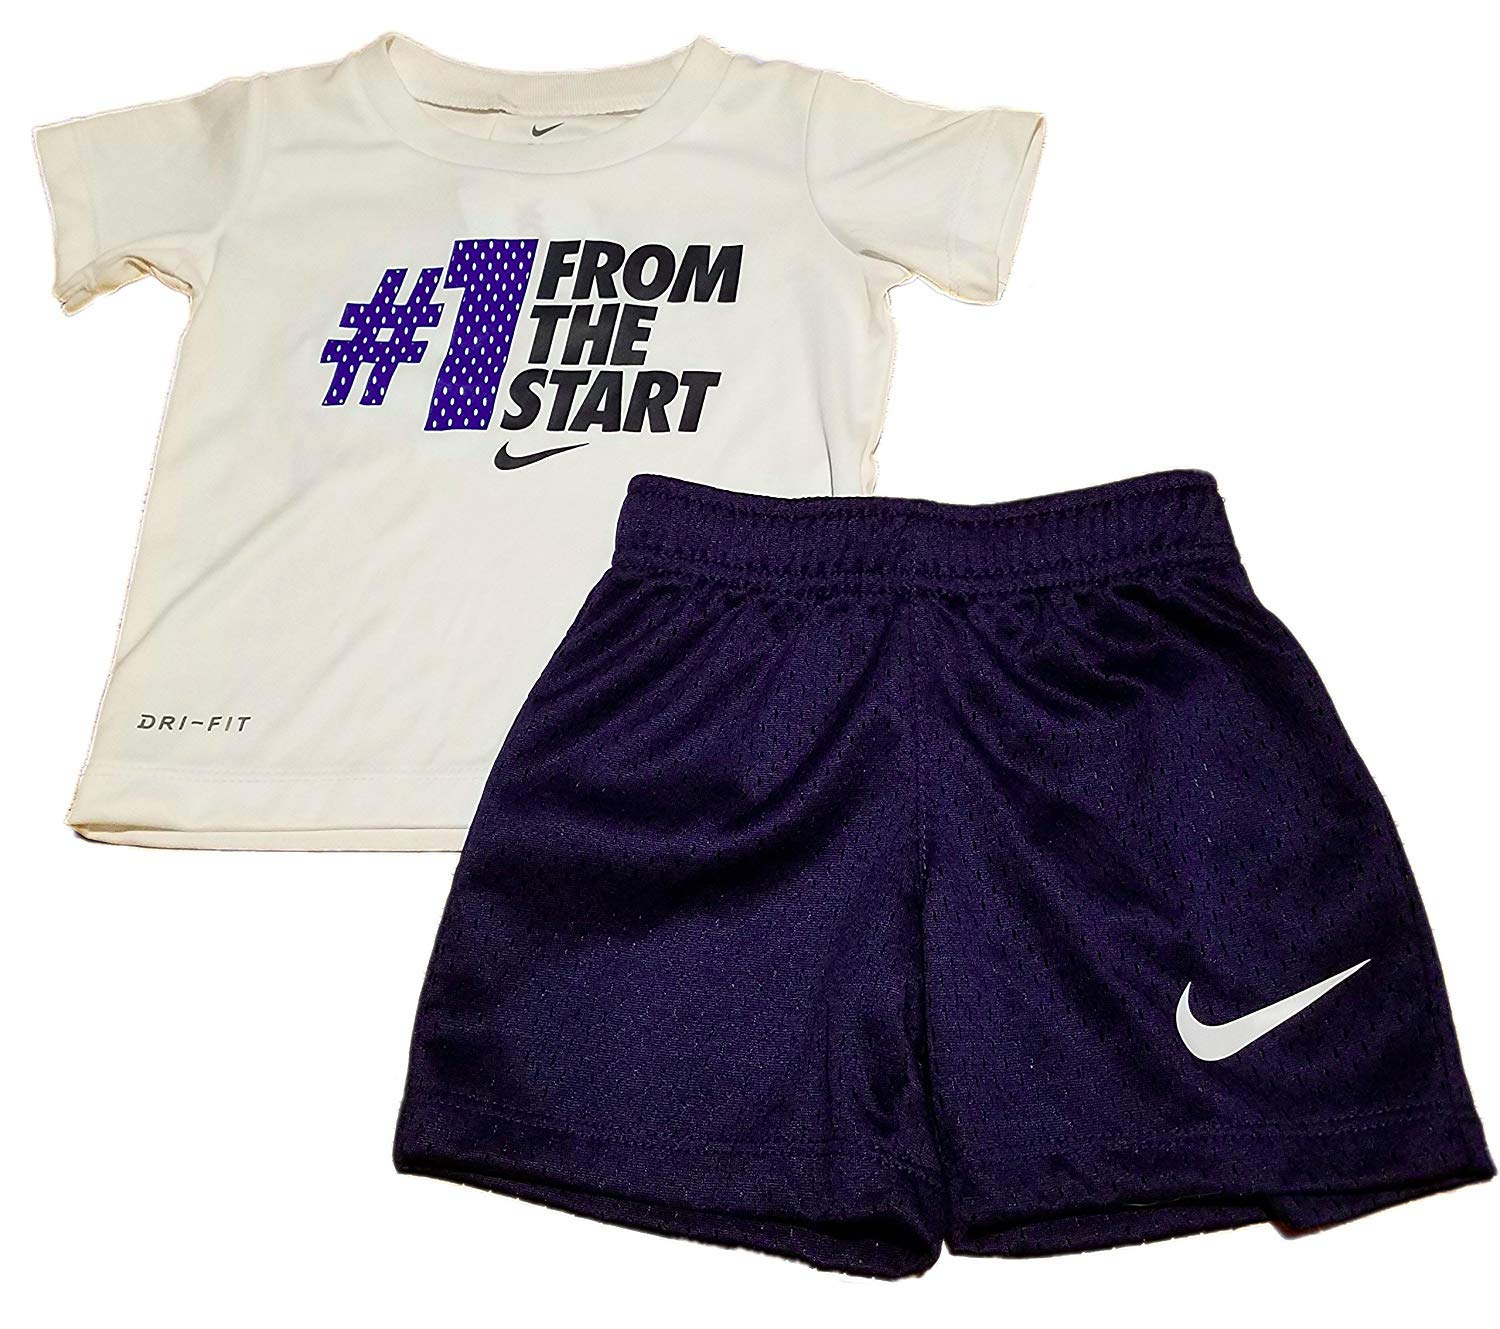 NIKE Baby Boy's Dri-Fit #1 From The Start 2-Piece Short Set, 12 Months, Binary Blue